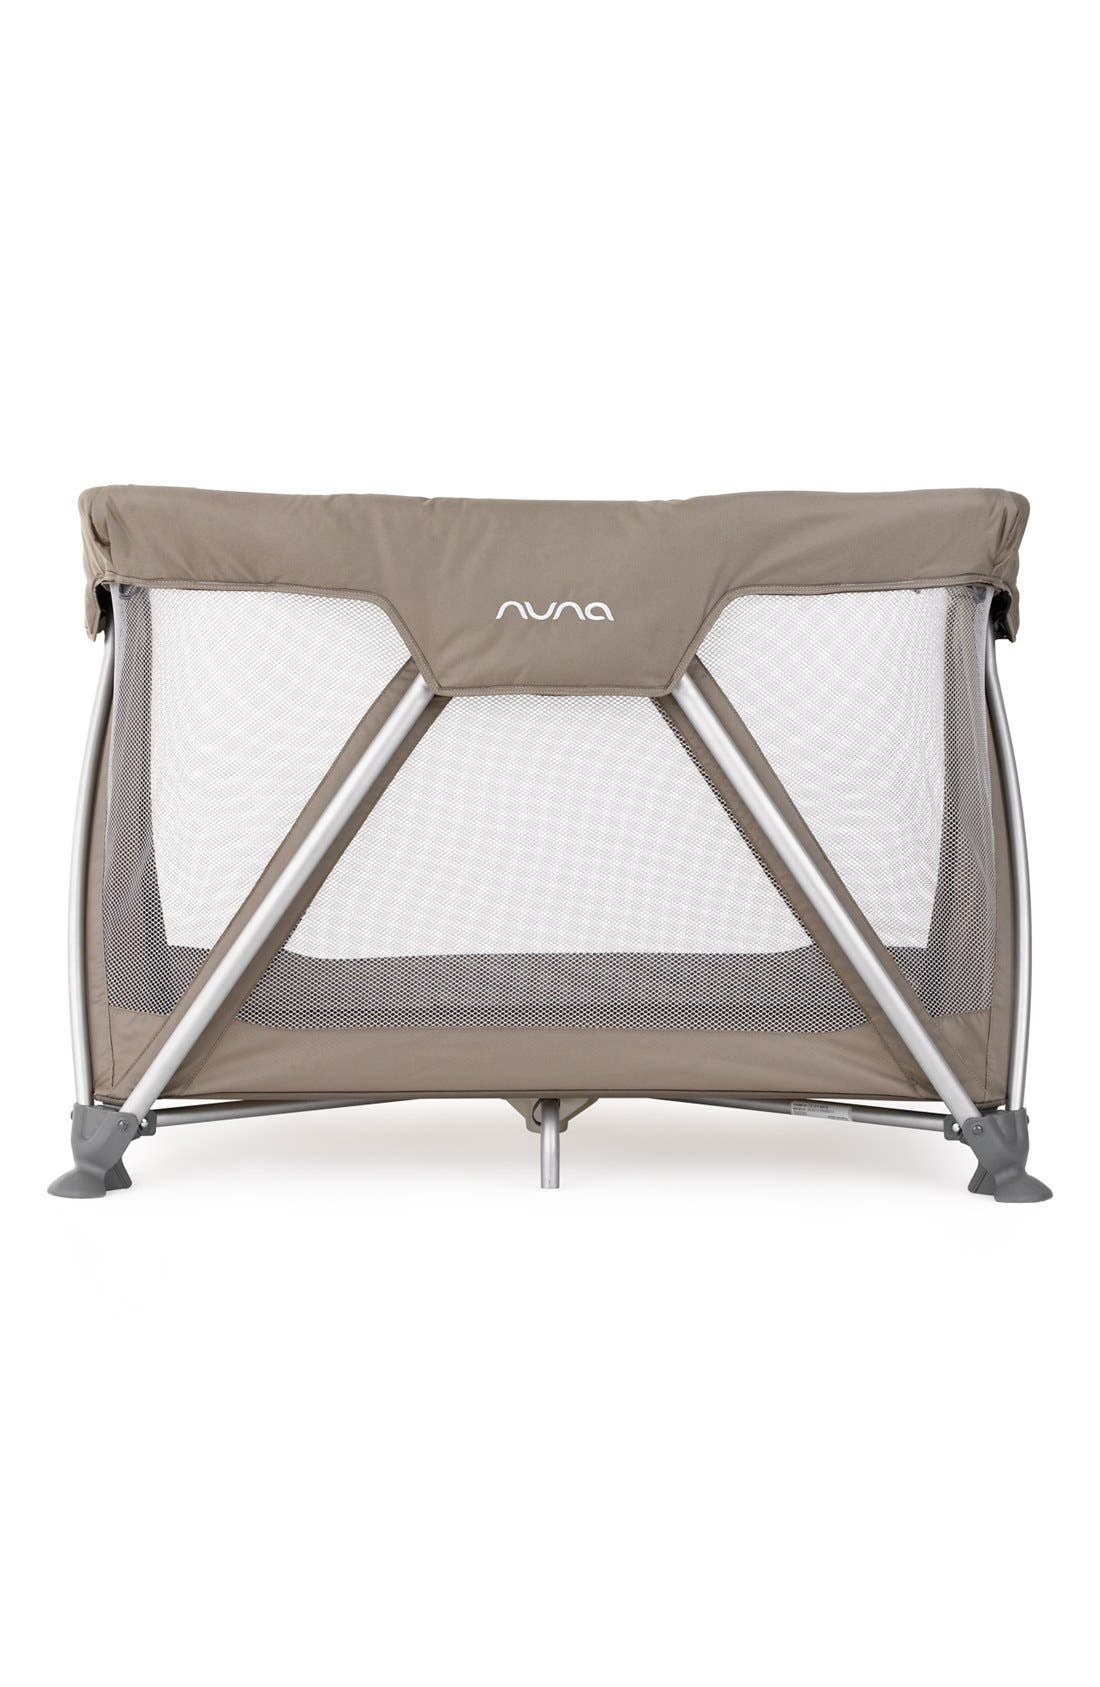 Alternate Image 1 Selected - nuna 'SENA™' Travel Crib (Online Only)